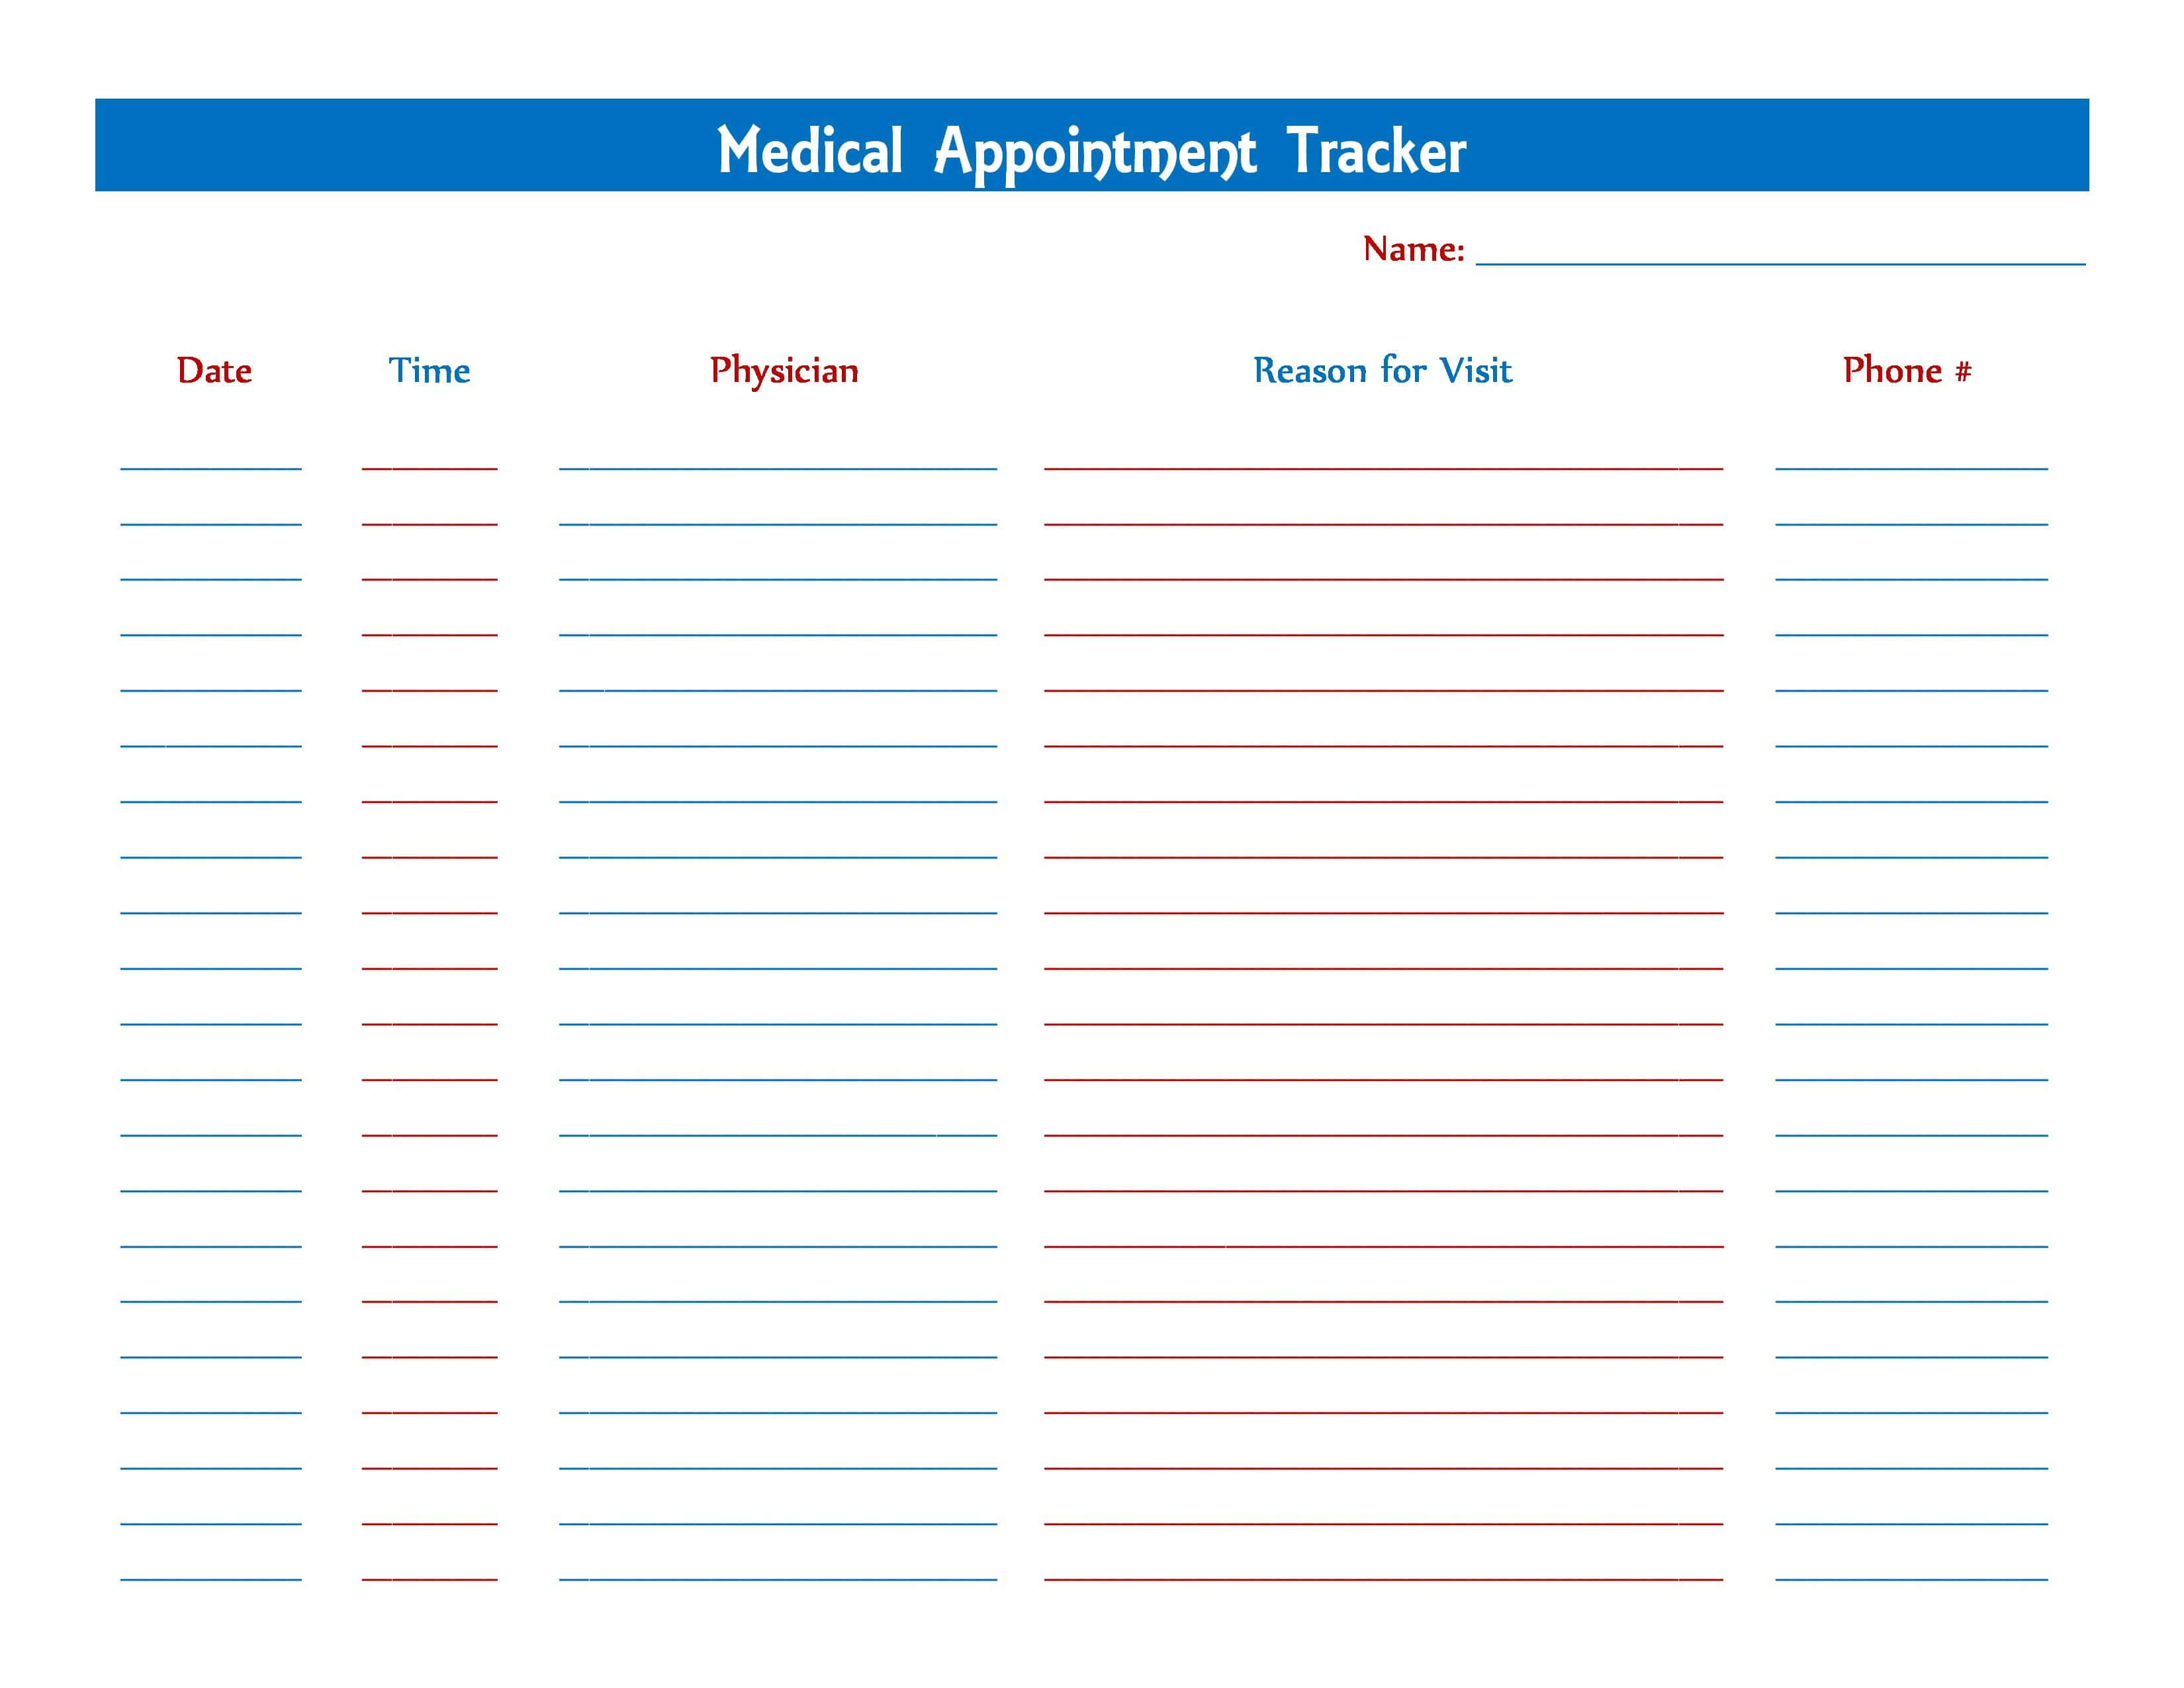 Medical Appointment Tracker | Medical Help, Medical, Getting regarding Medical Appointment Card Template Free